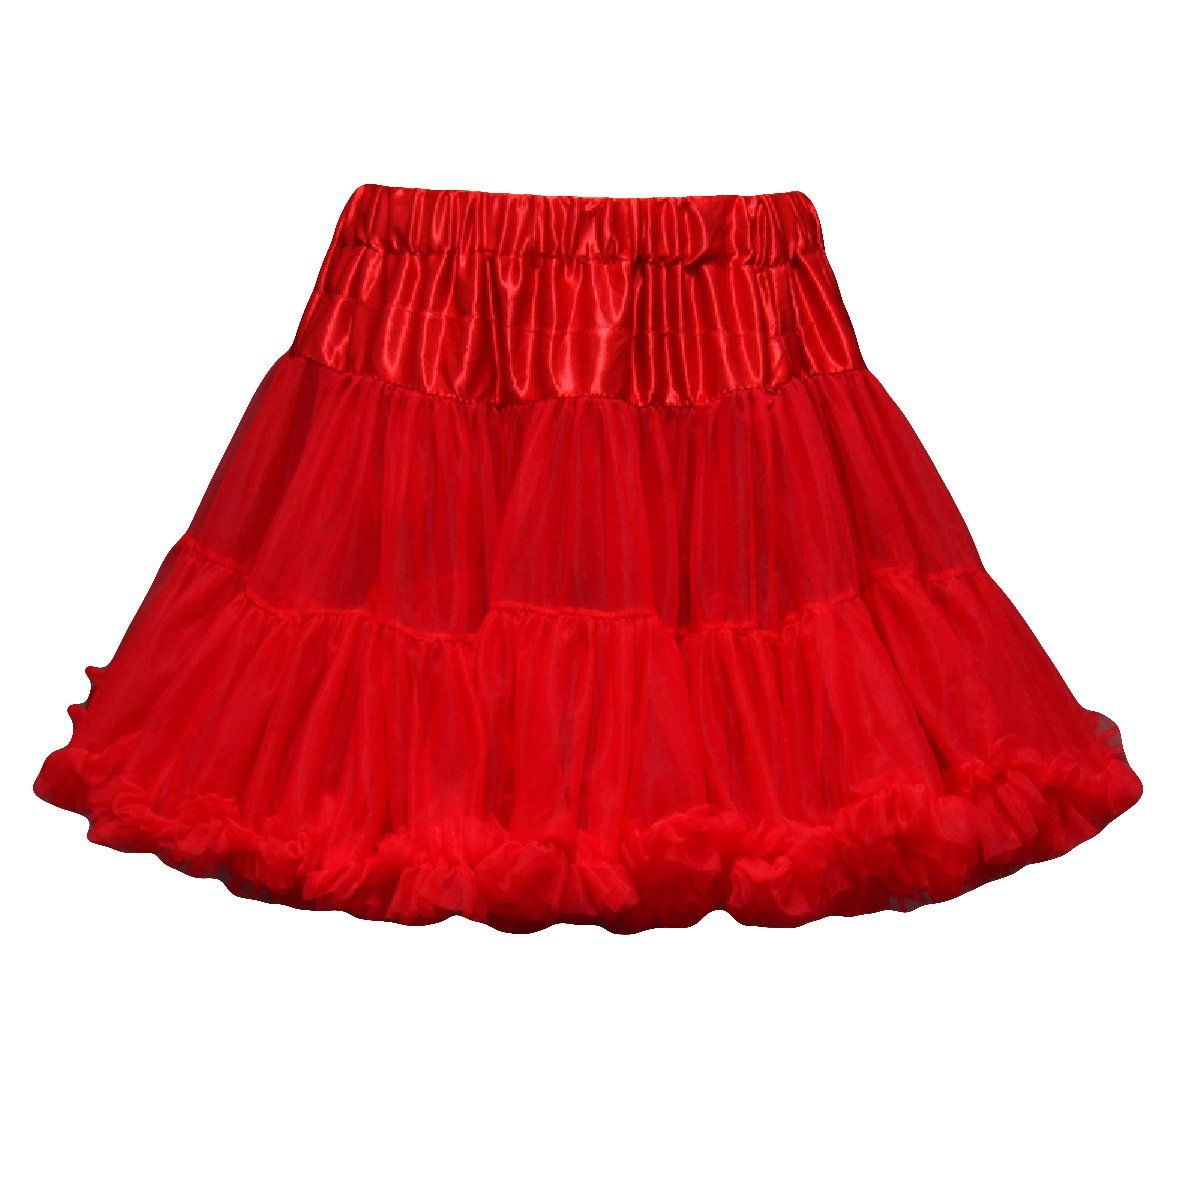 Monalia Kid's Tutu Skirt Half Slip Flower Girl Underskirt Wedding Petticoat MPC5 MPC005BK